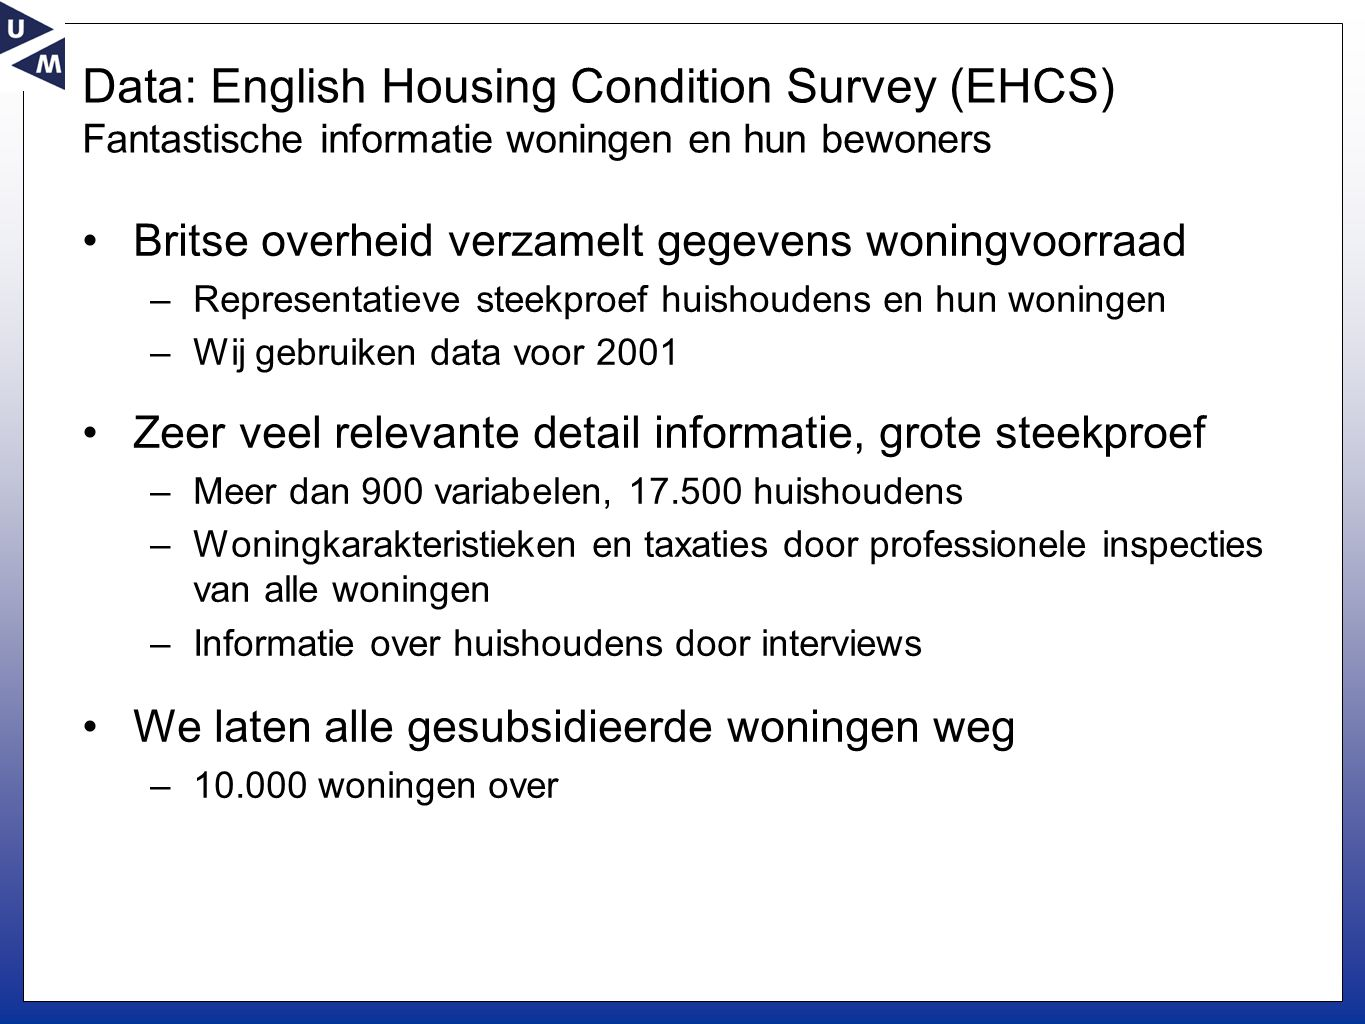 Data: English Housing Condition Survey (EHCS) Fantastische informatie woningen en hun bewoners